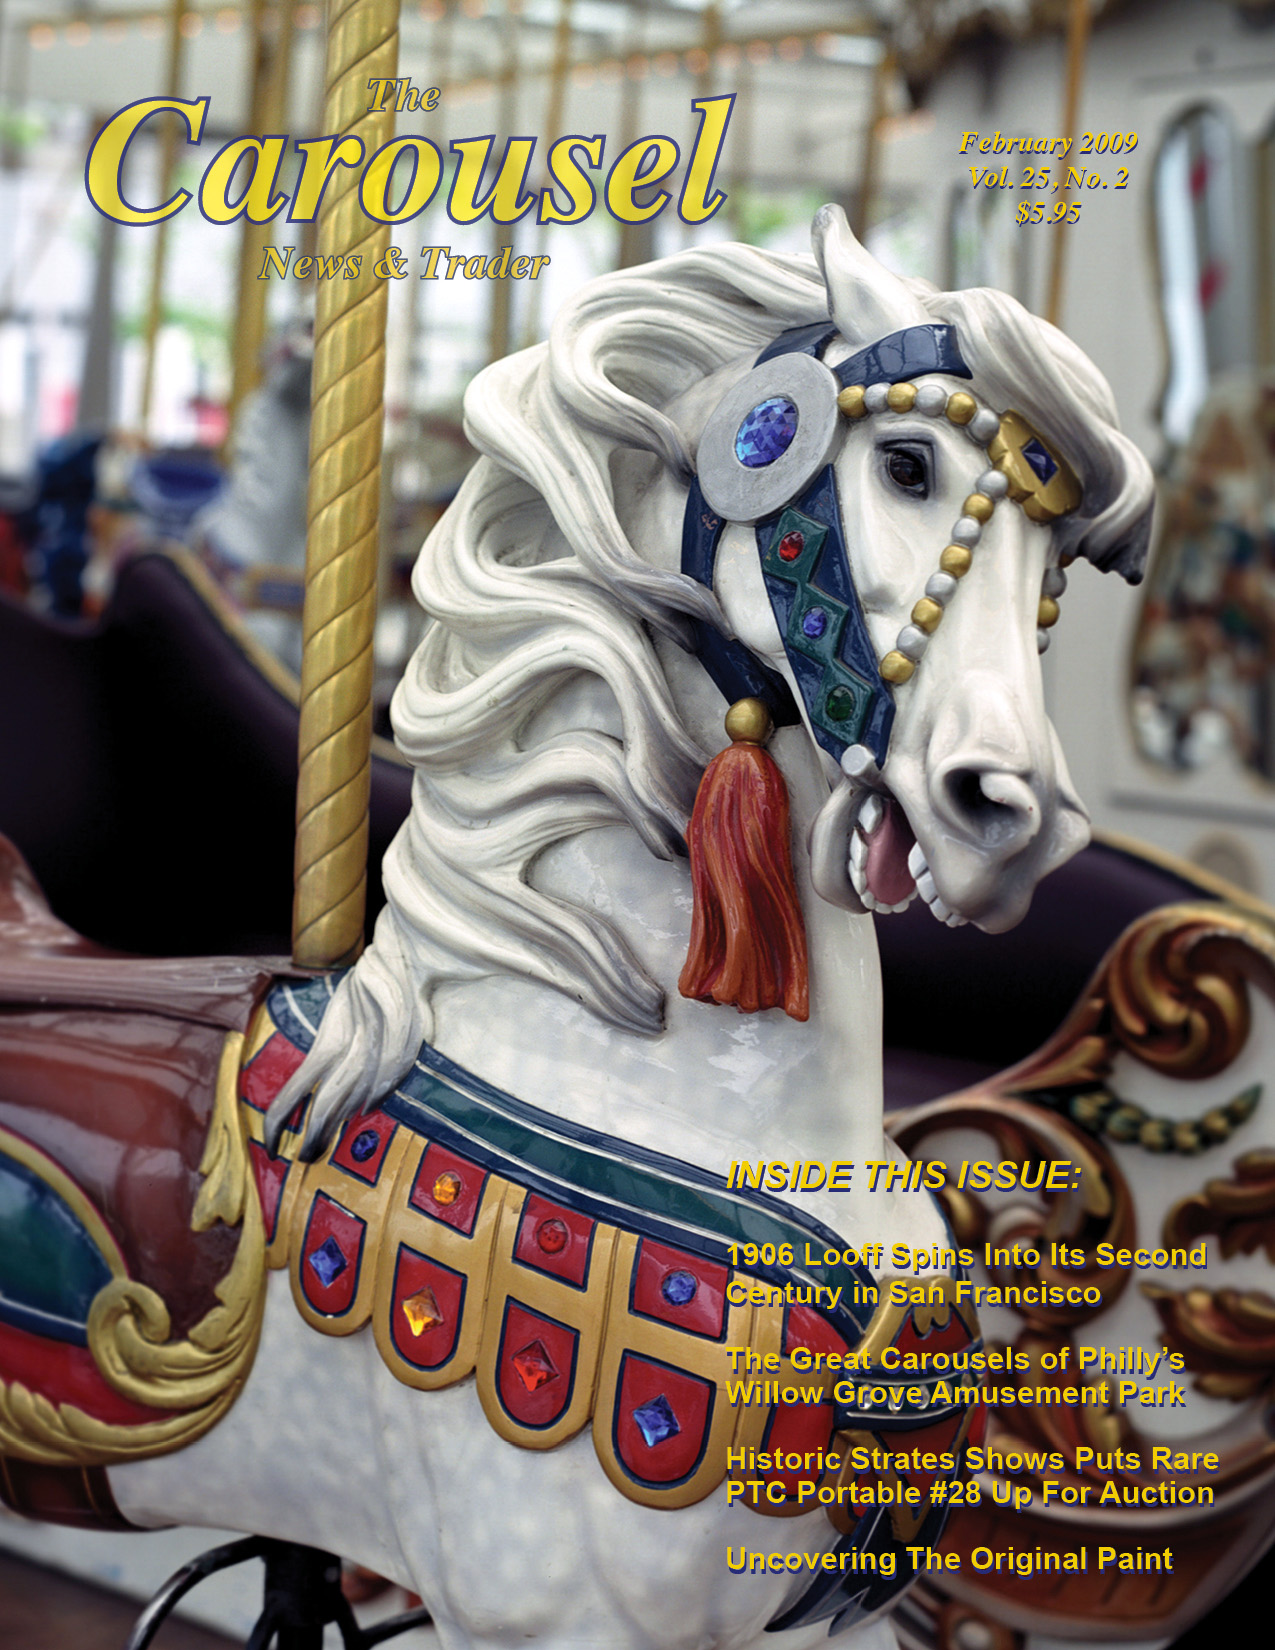 Issue No. 2, Vol. 25 – February 2009